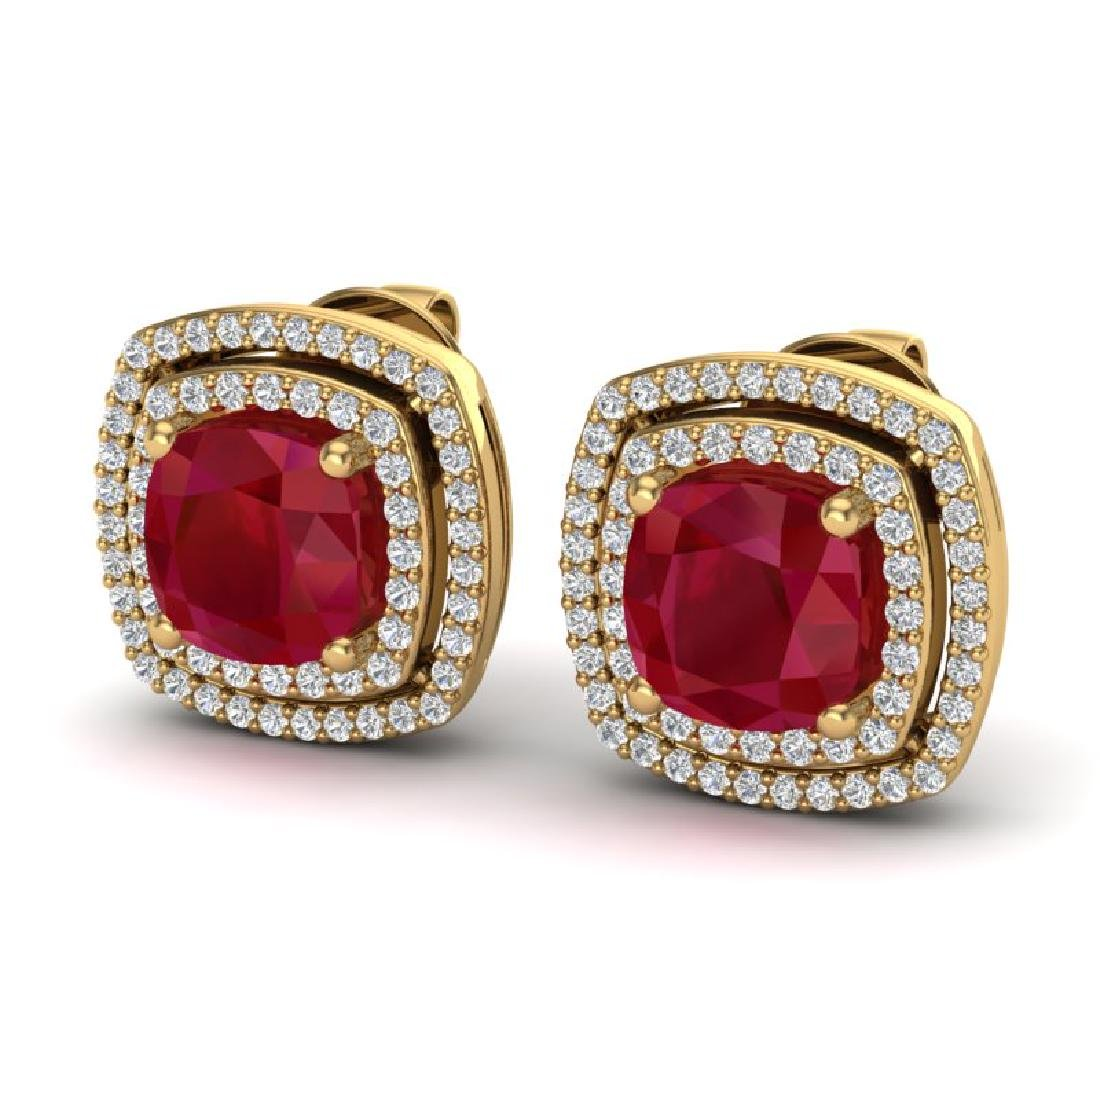 4.95 CTW Ruby & Micro Pave VS/SI Diamond Halo Earrings